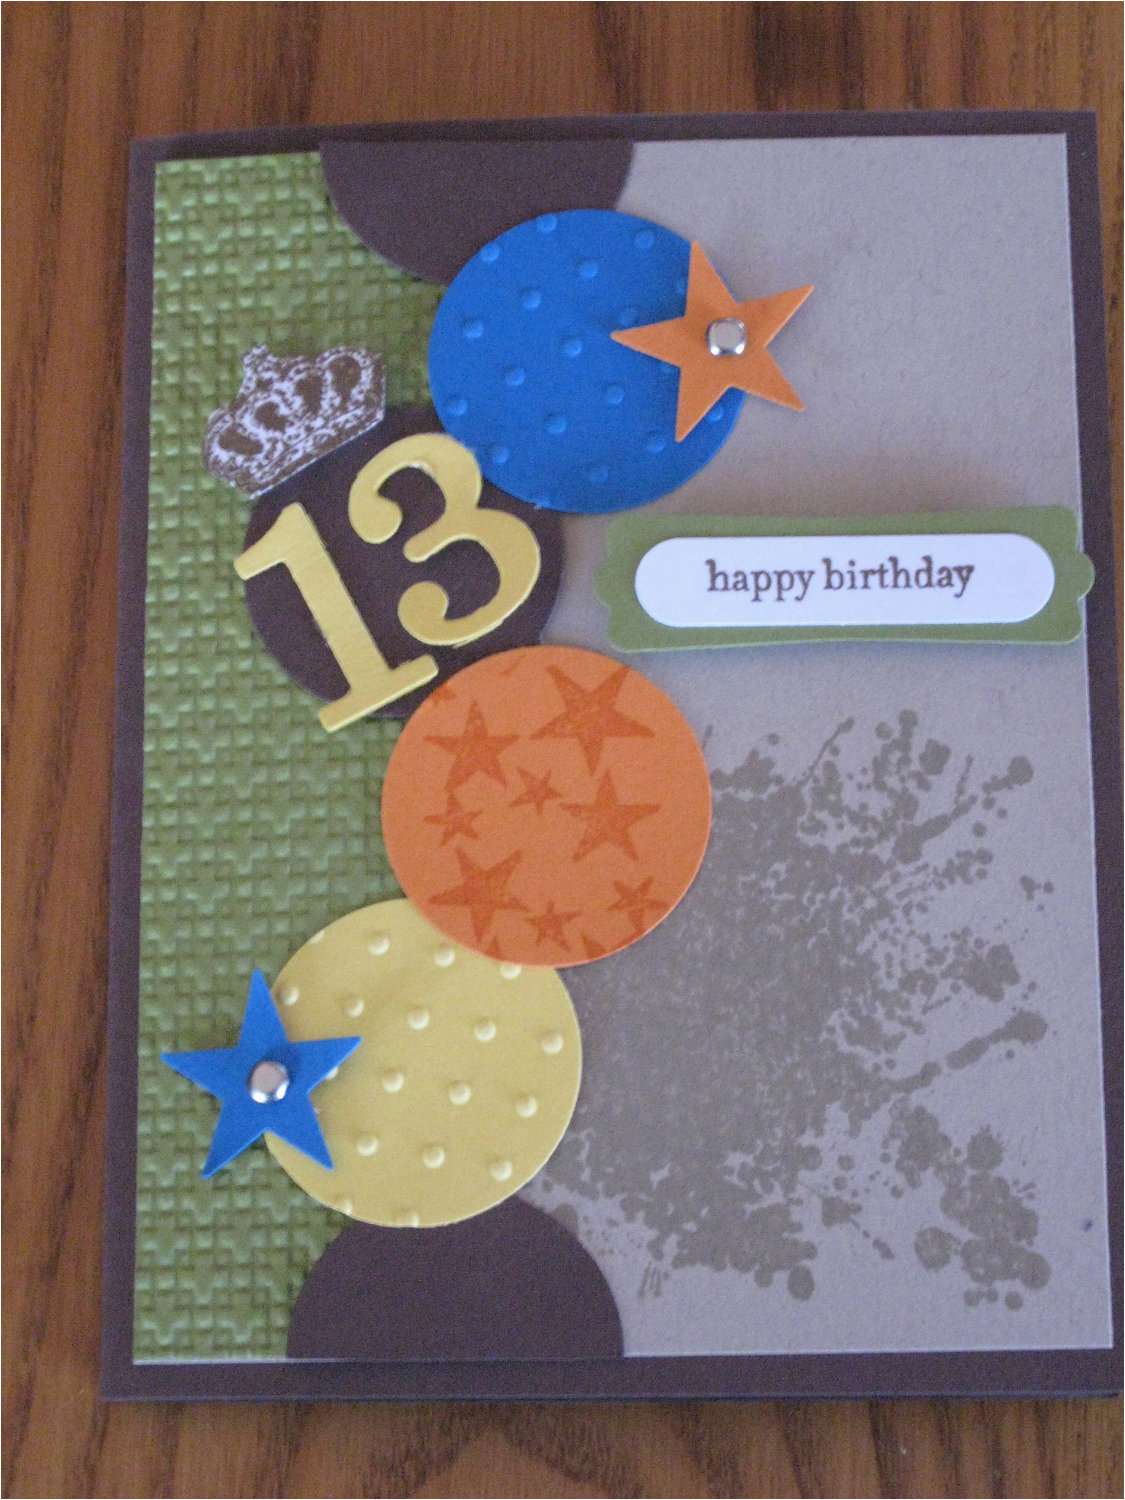 Birthday Card For Teenager Boy Teen Son Grandson Nephew Cousin Friend Handmade